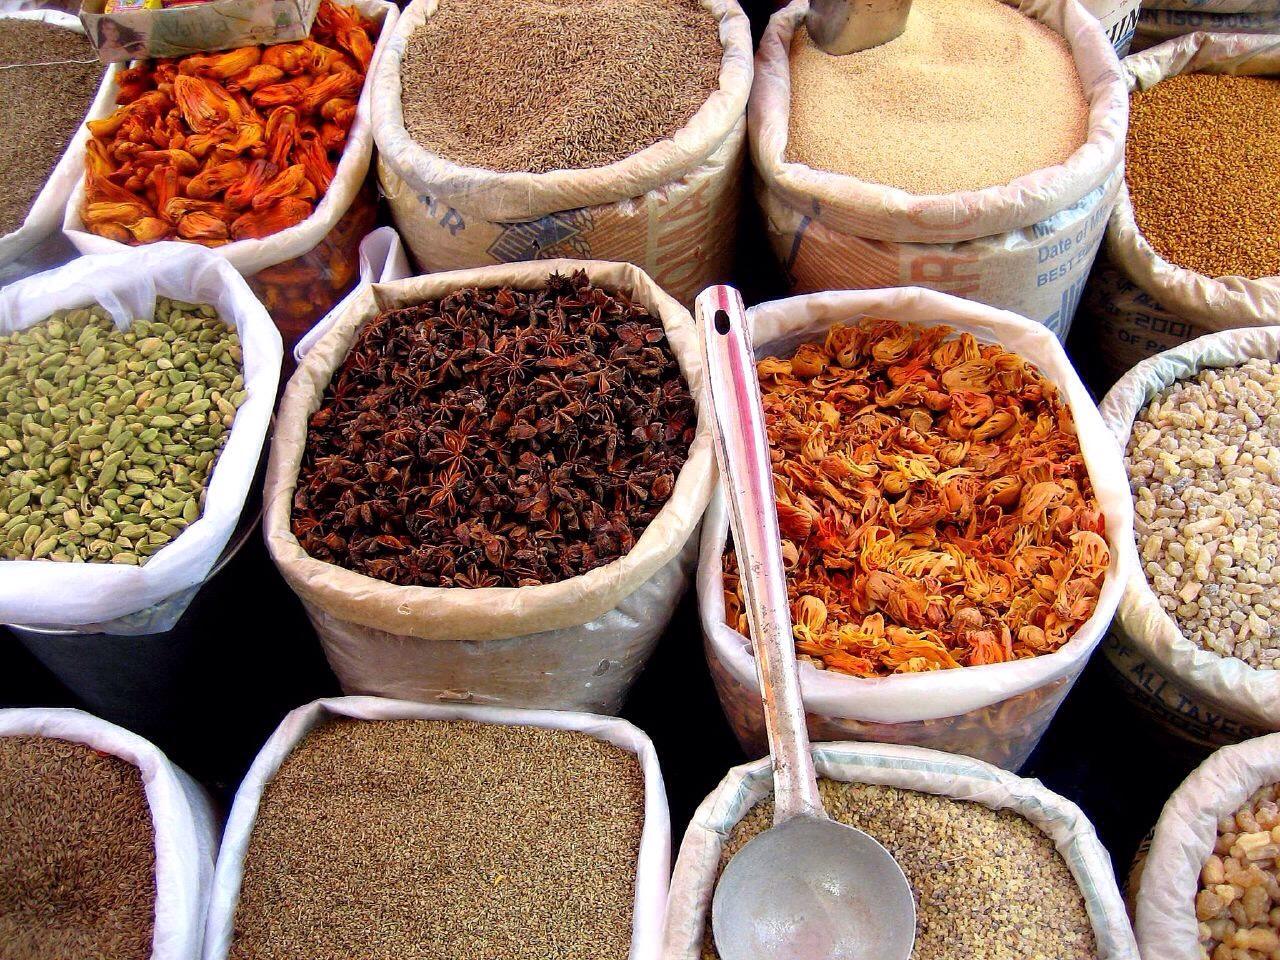 Here are a list of spices that help with weight  loss and health! Enjoy! :)